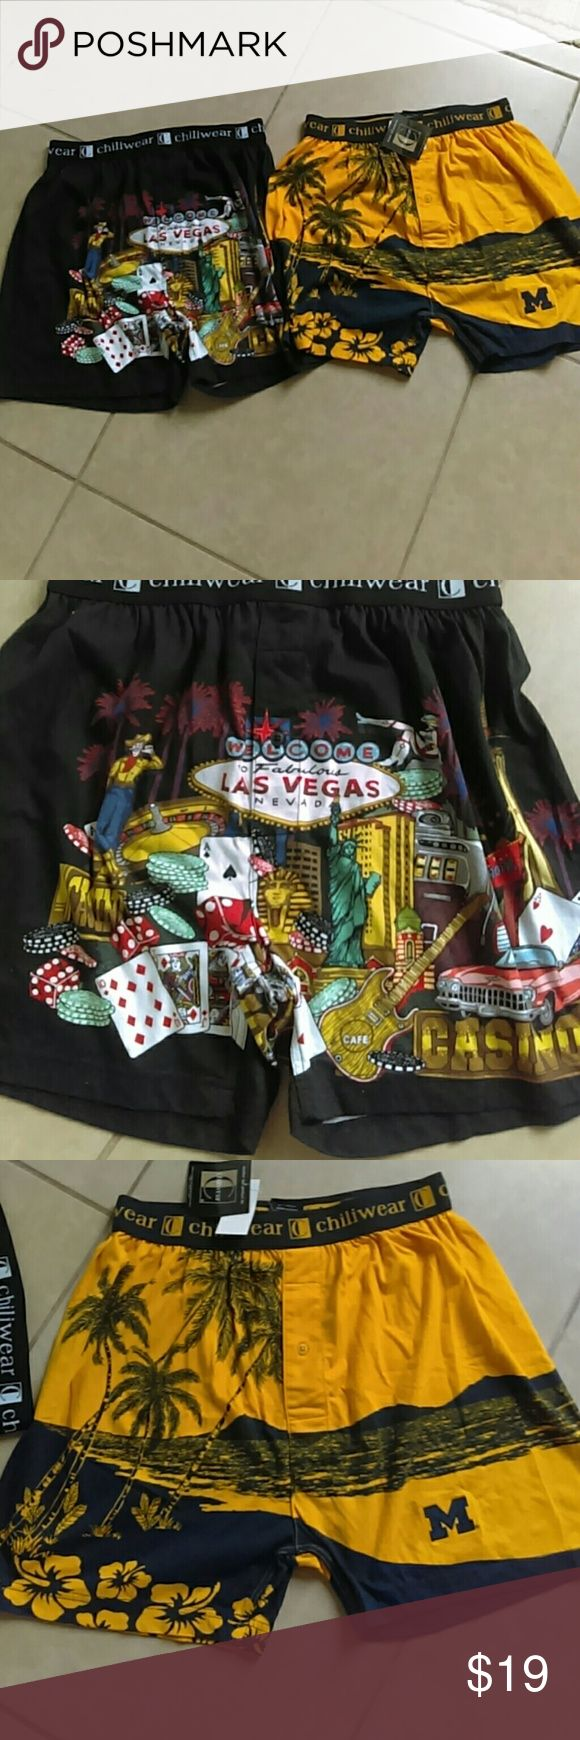 2 Men Boxers Chiliwear New with tags Las Vegas and M Letter. Very comfortable boxers Chiliwear  Underwear & Socks Boxers